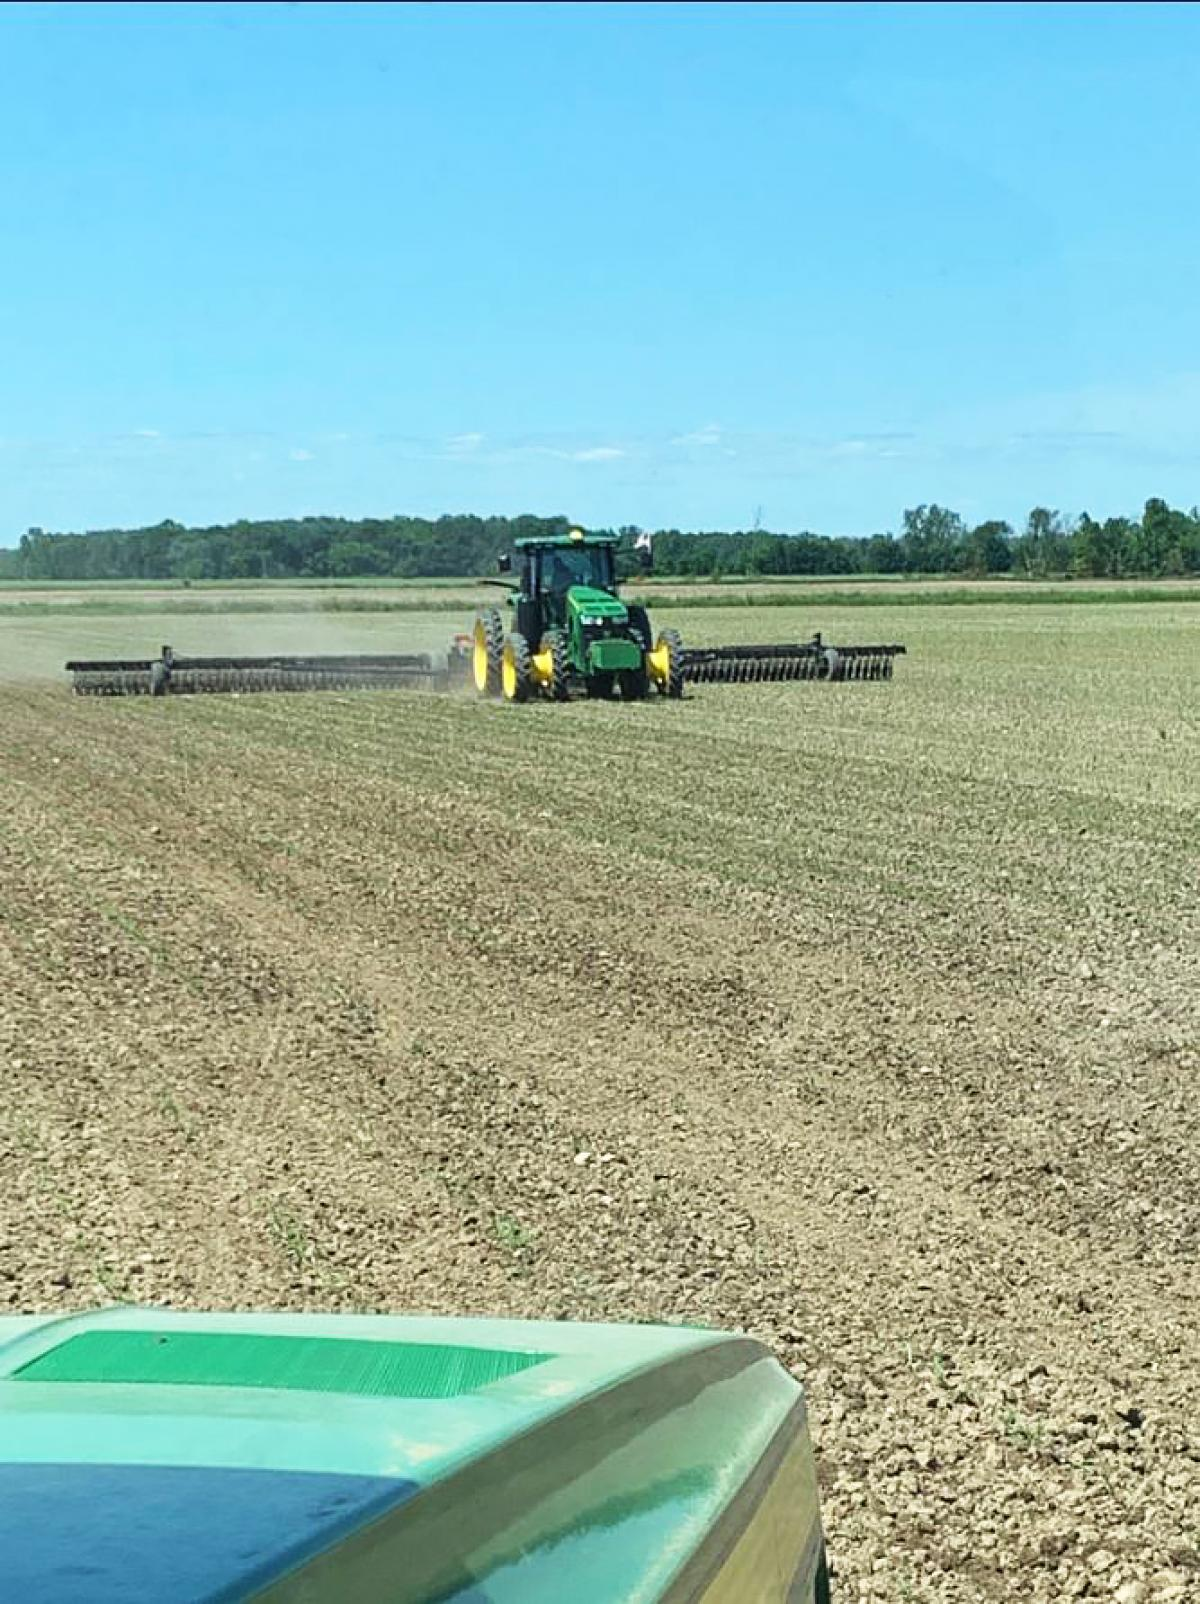 3600 Pull-Type Rotary Hoe in field